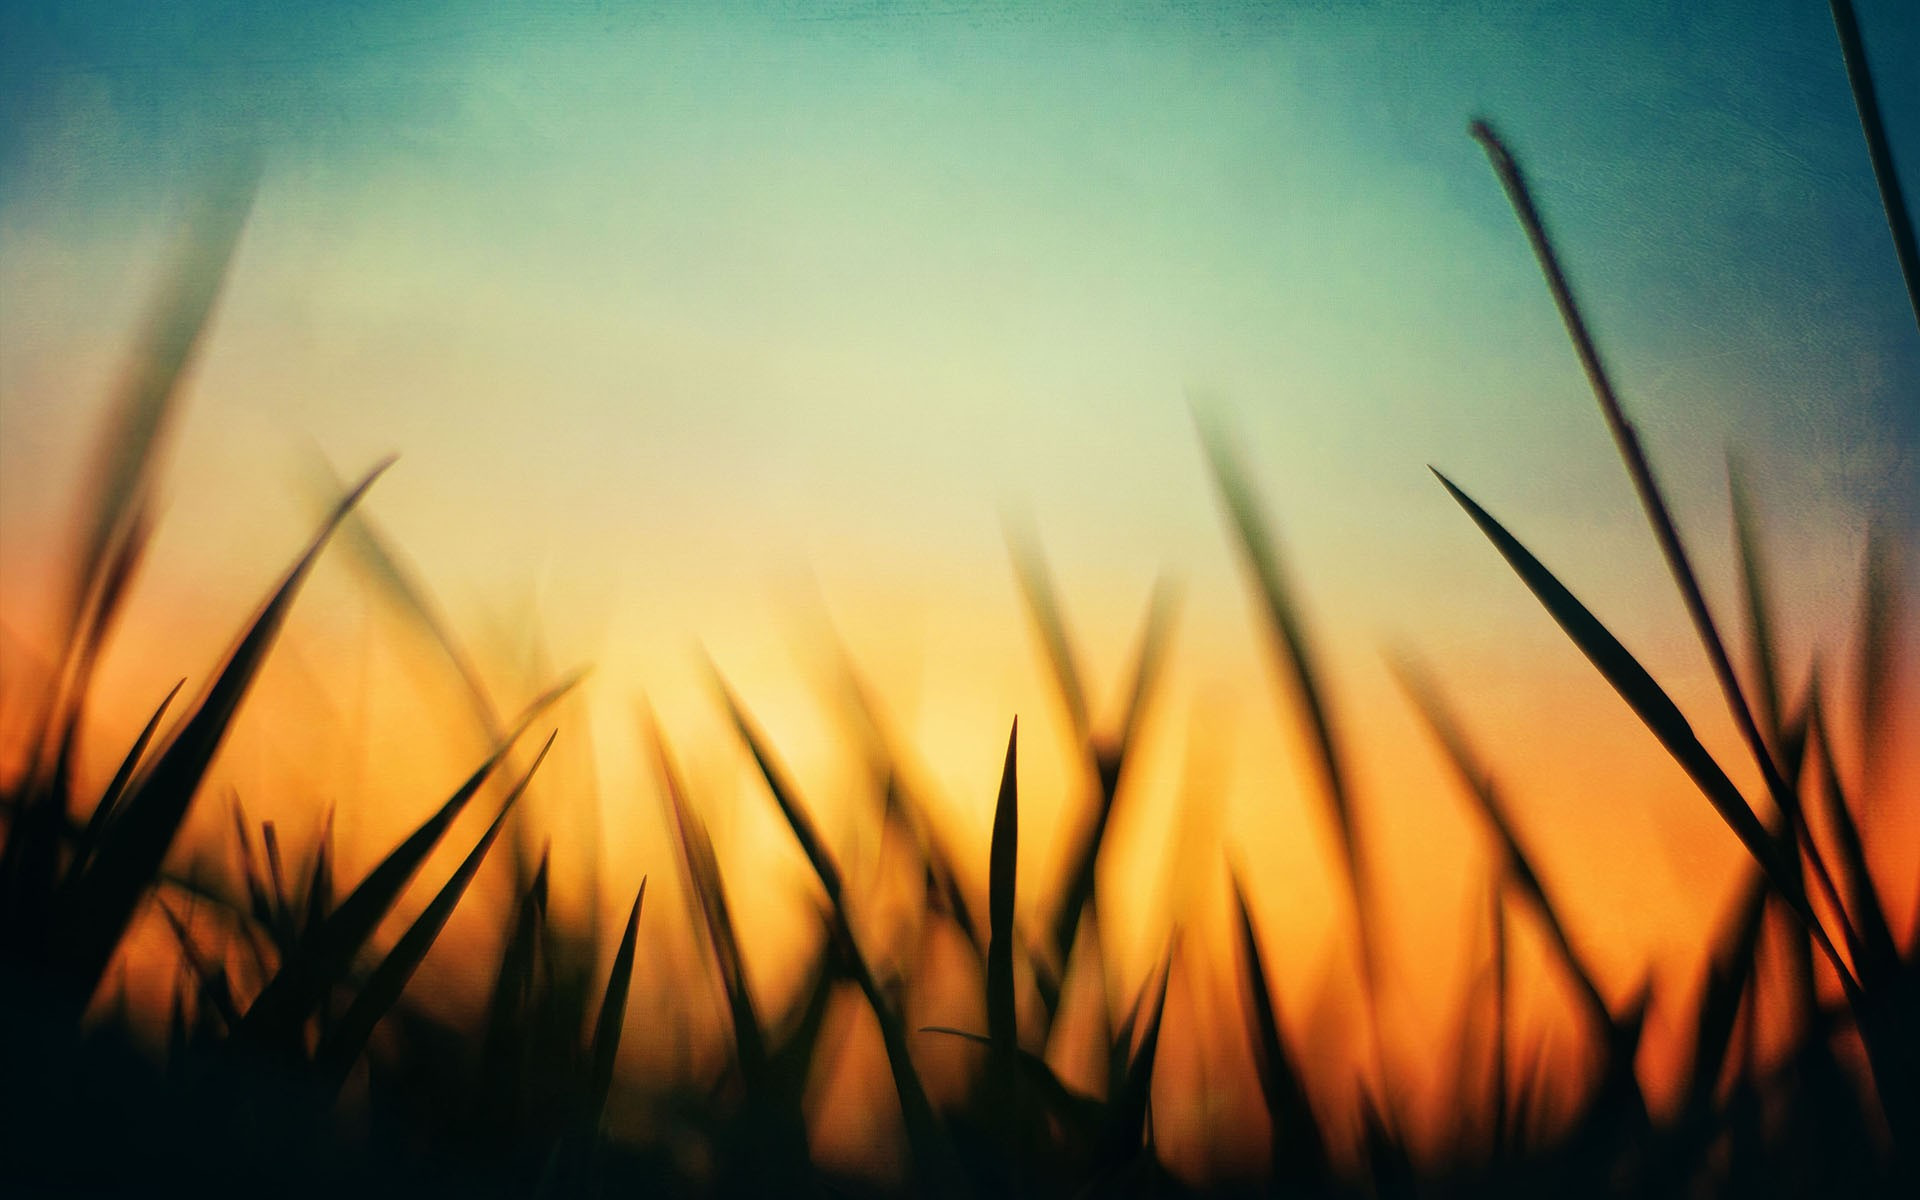 3d Hd Wallpapers For Laptop 1366x768 Grass Sunset Wallpapers Hd Desktop And Mobile Backgrounds